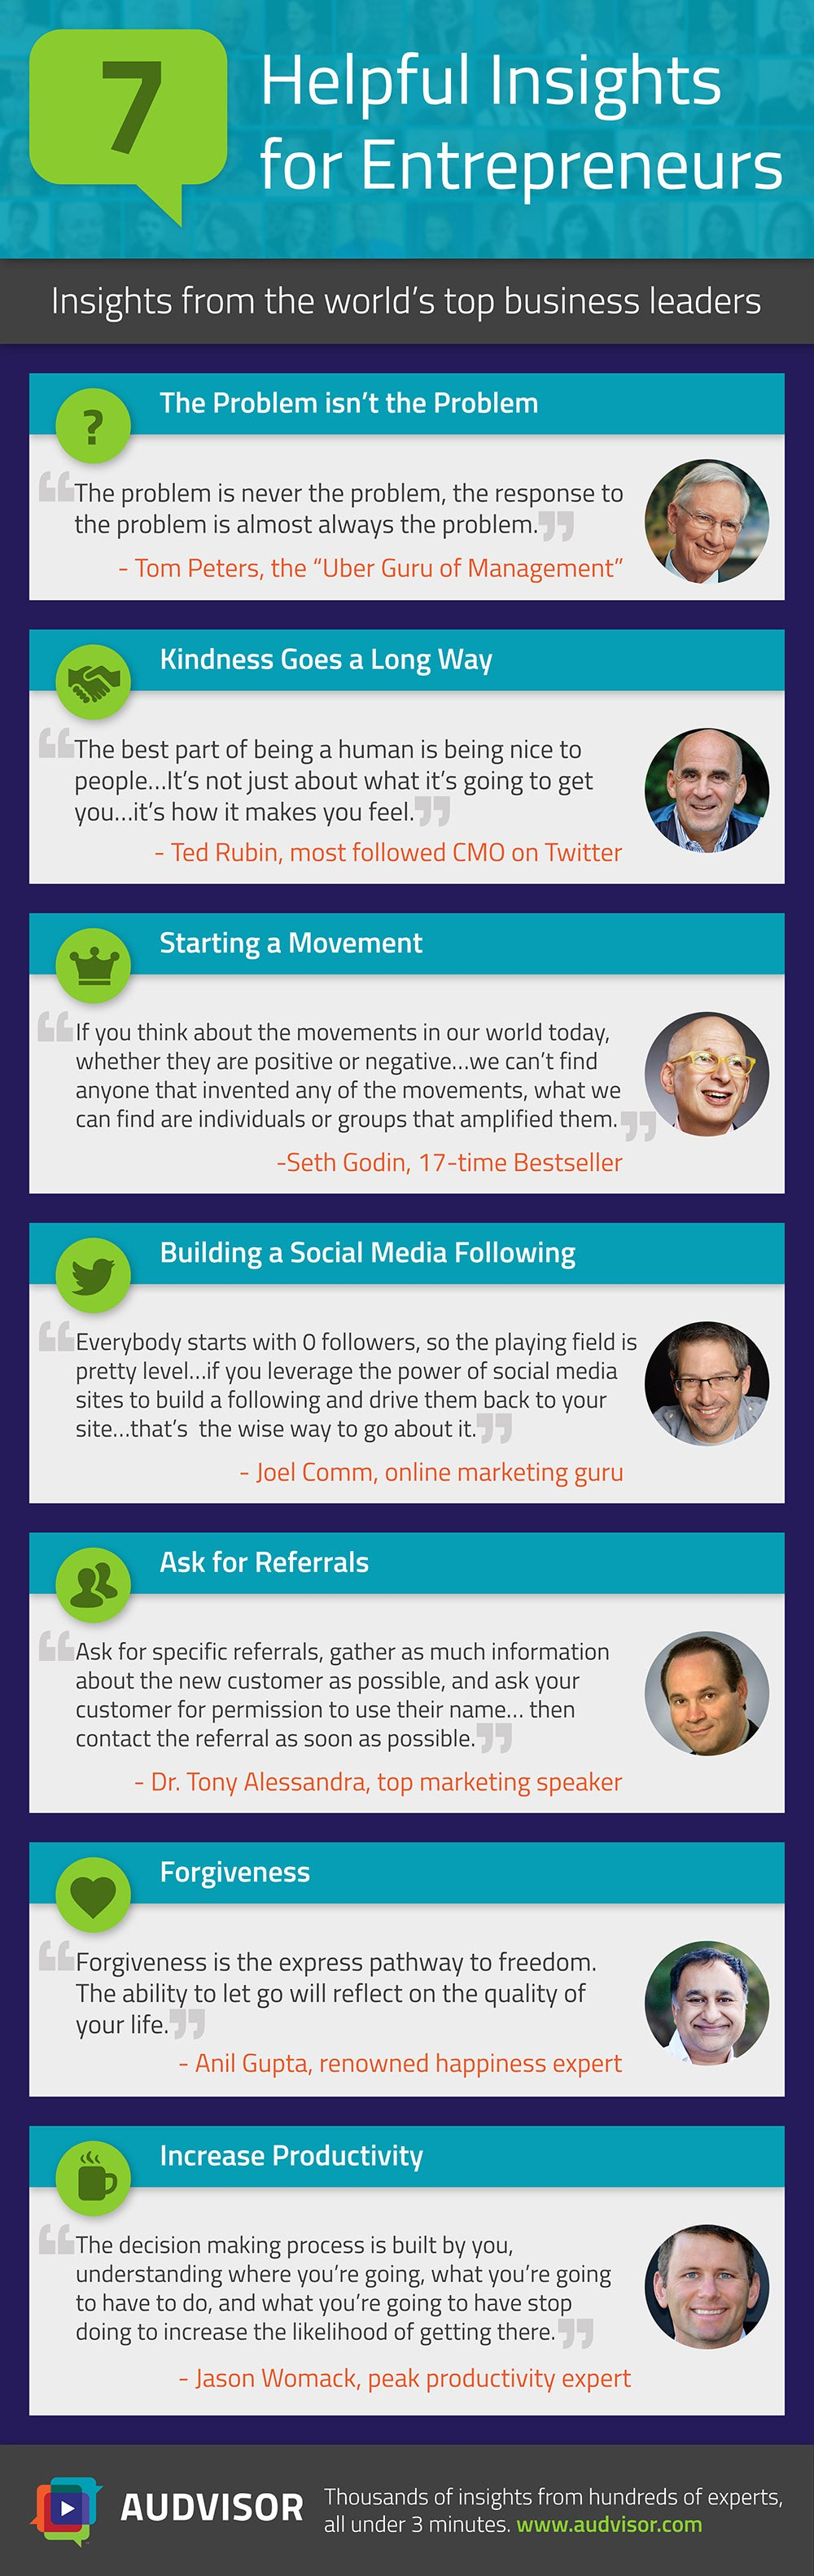 7 Key Insights From Top Business Leaders (Infographic)